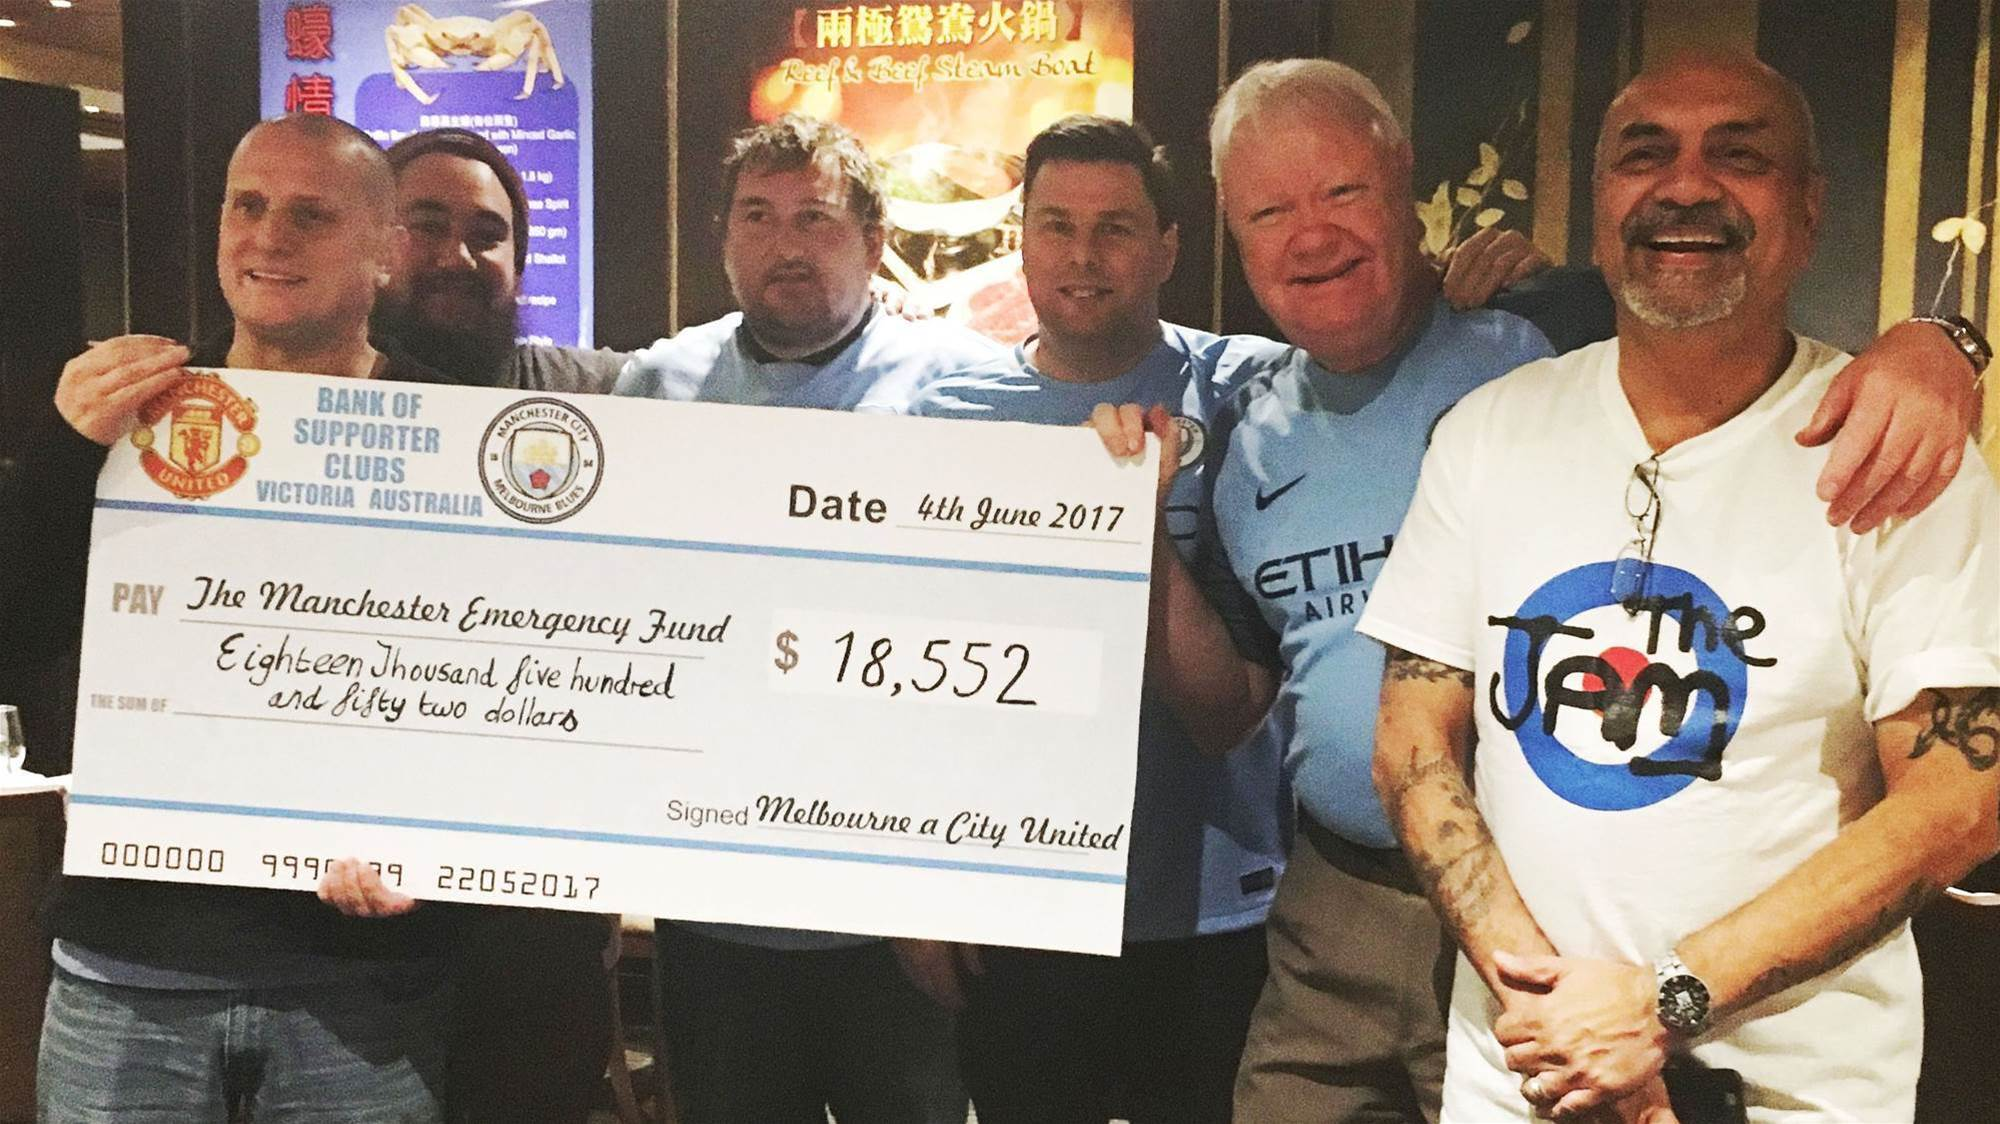 Melbourne's City-United fans raise record amount for Manchester victims